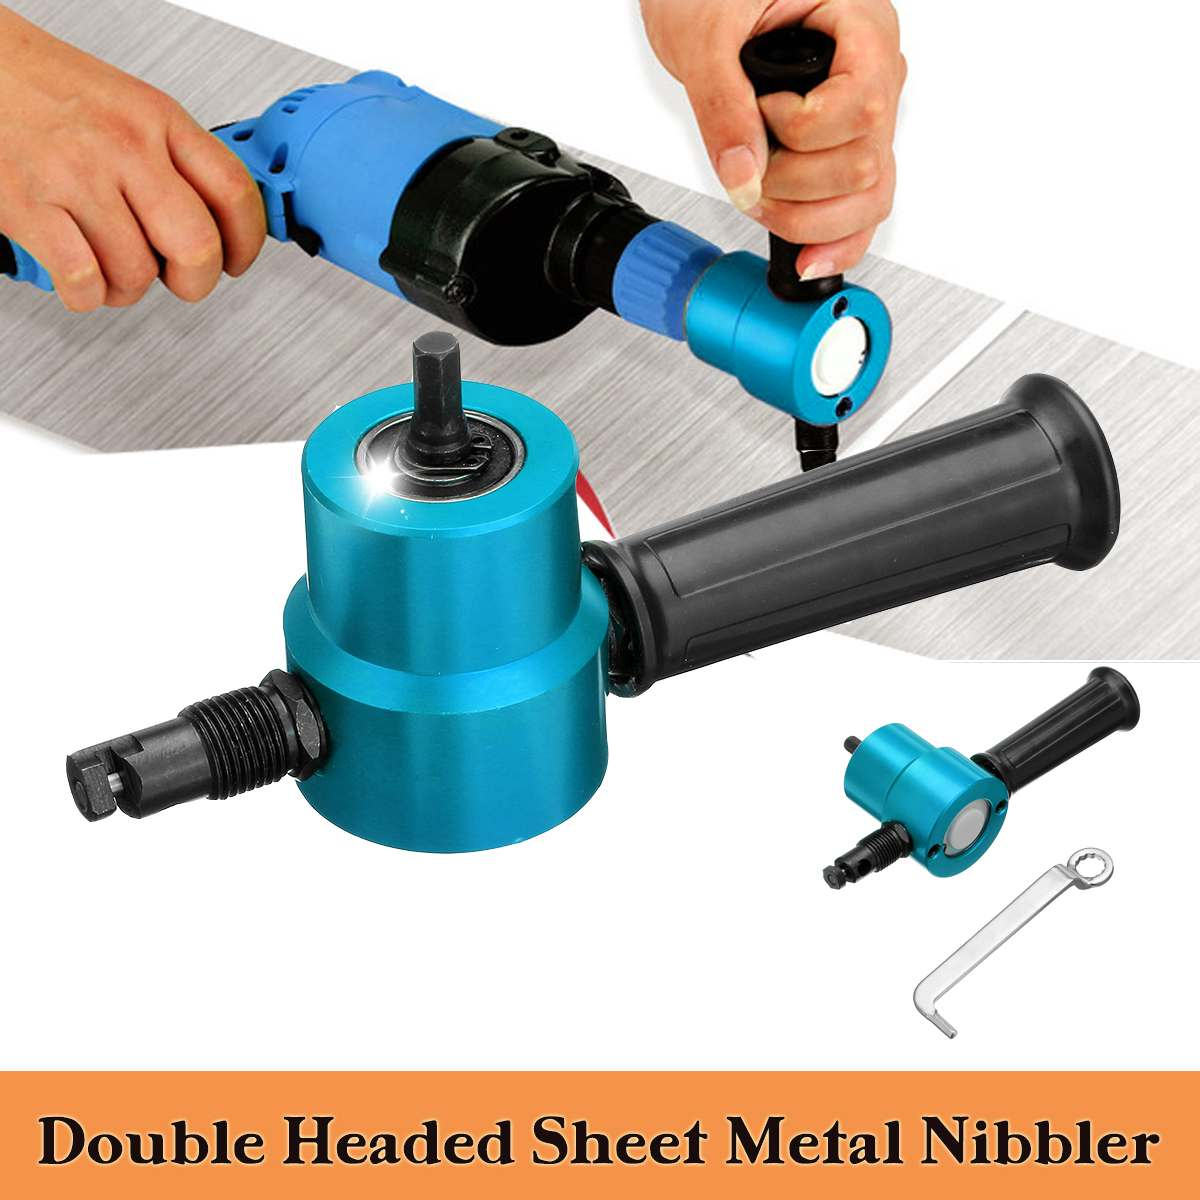 Double Headed Sheet Metal Cutting Nibbler Metal Saw Cutter 360 Degree Adjustable Drill Attachment With Wrench